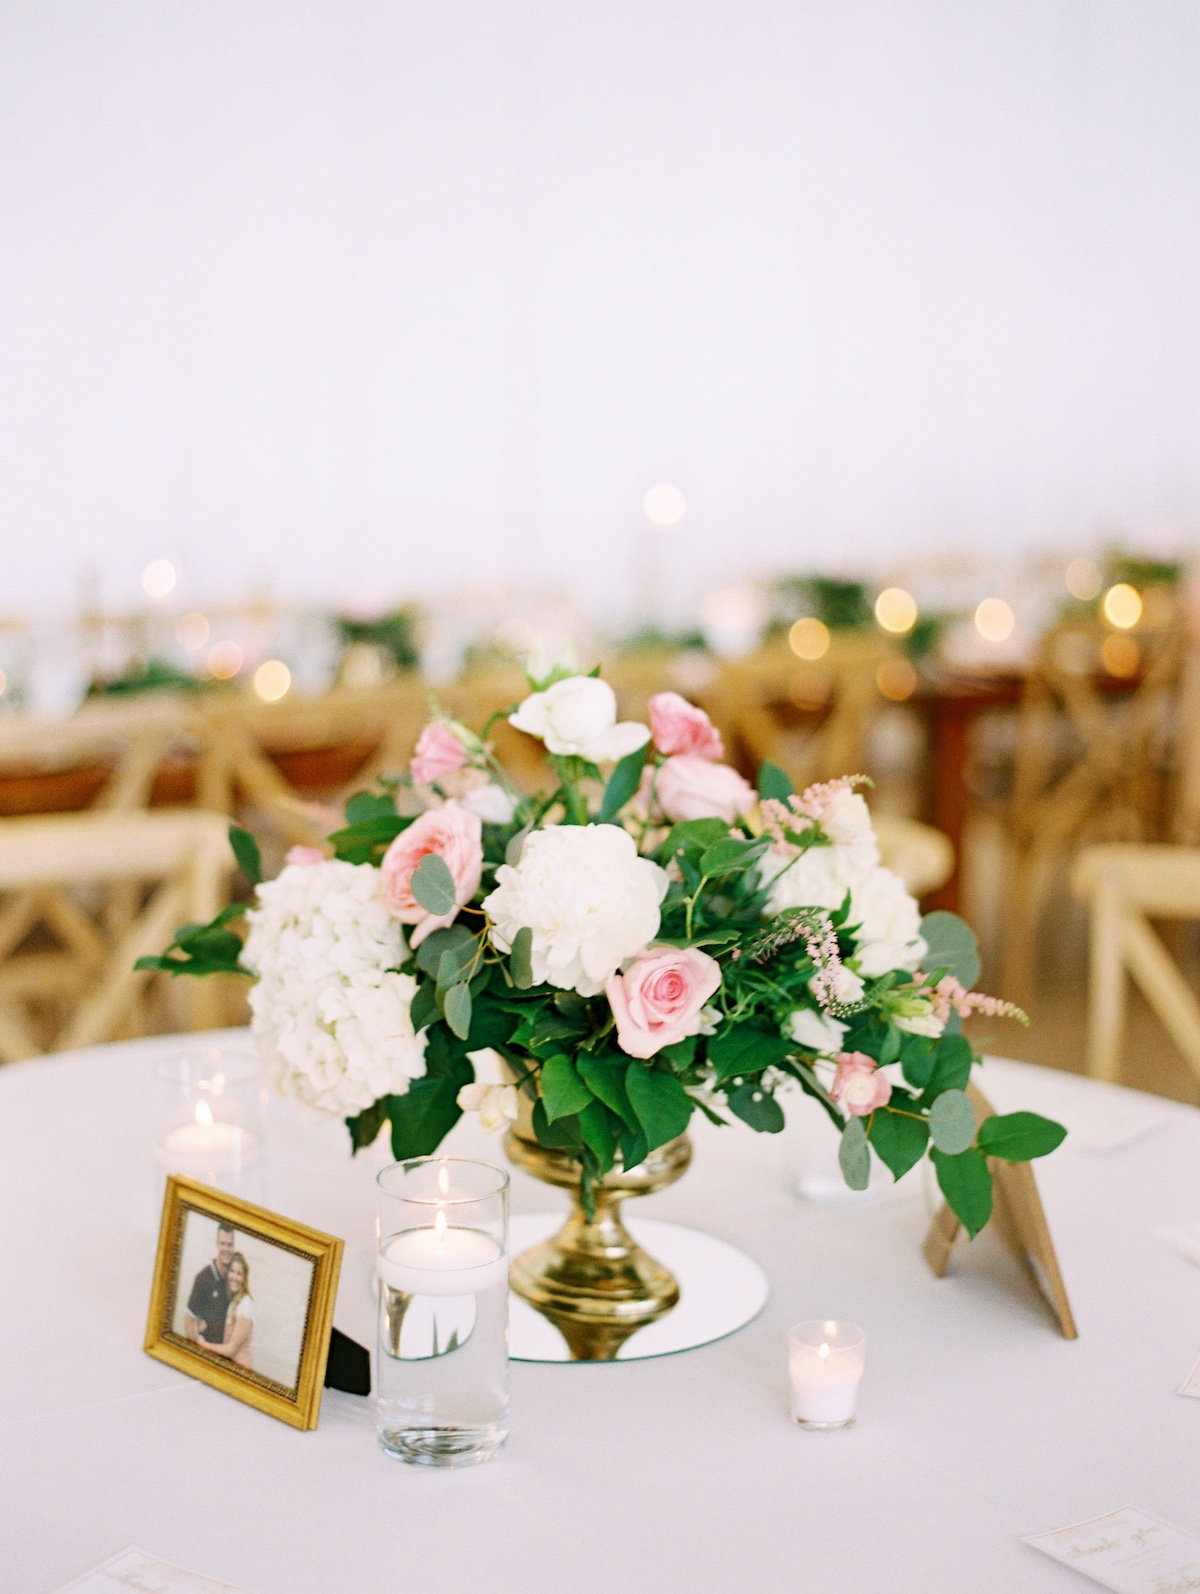 white and pink wedding table centerpiece